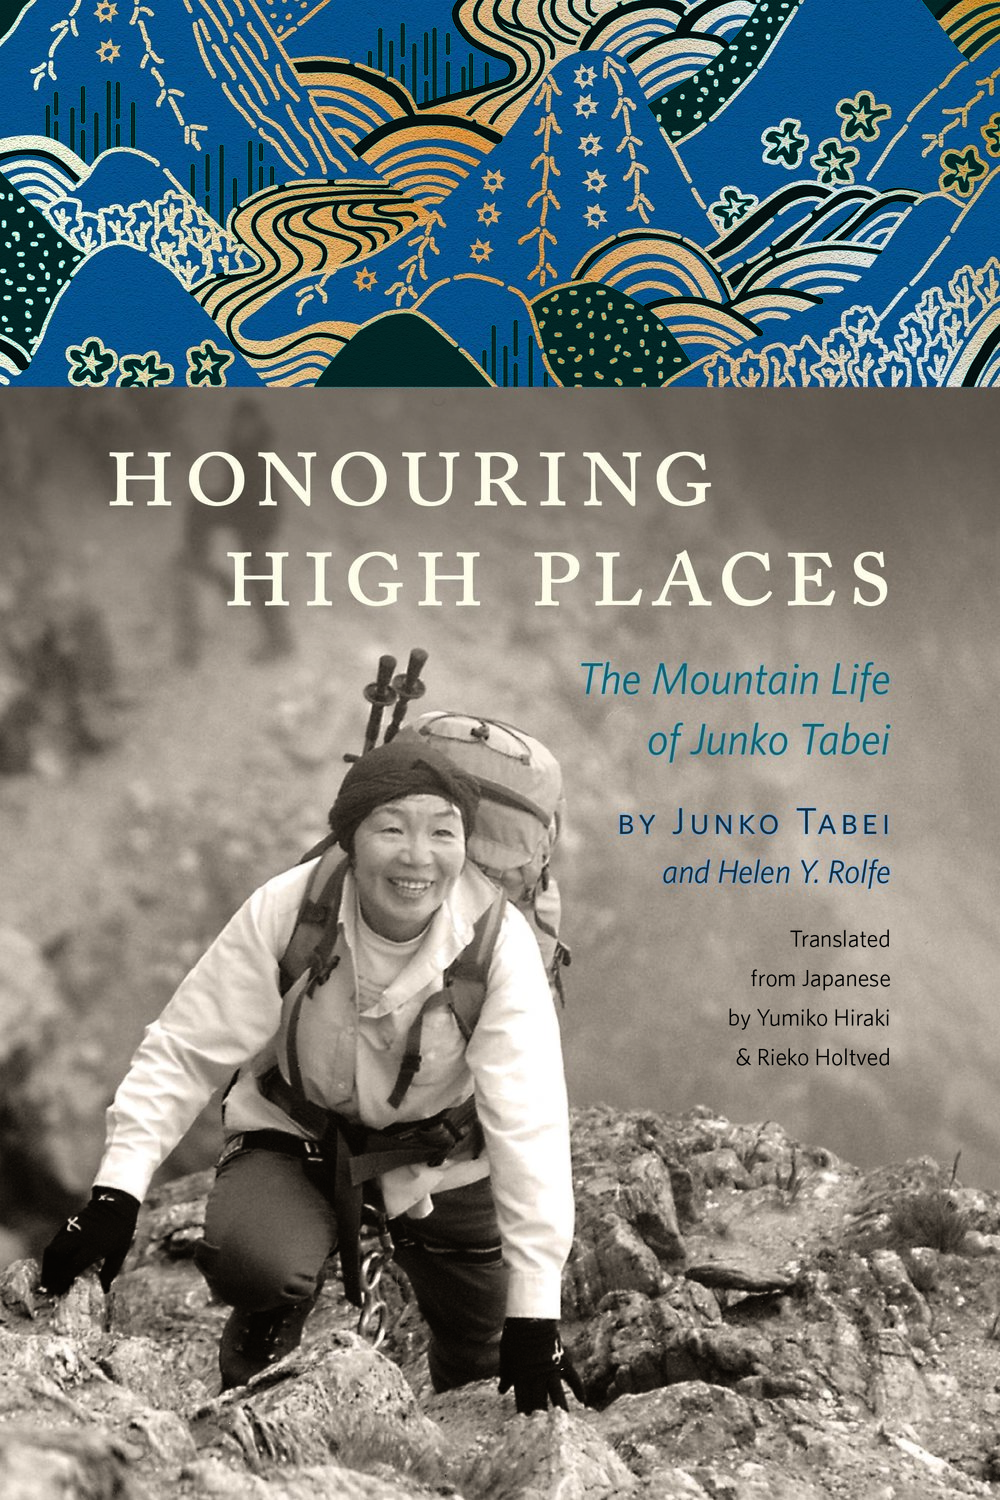 Copy of Honouring_High_Places_print-1.jpg